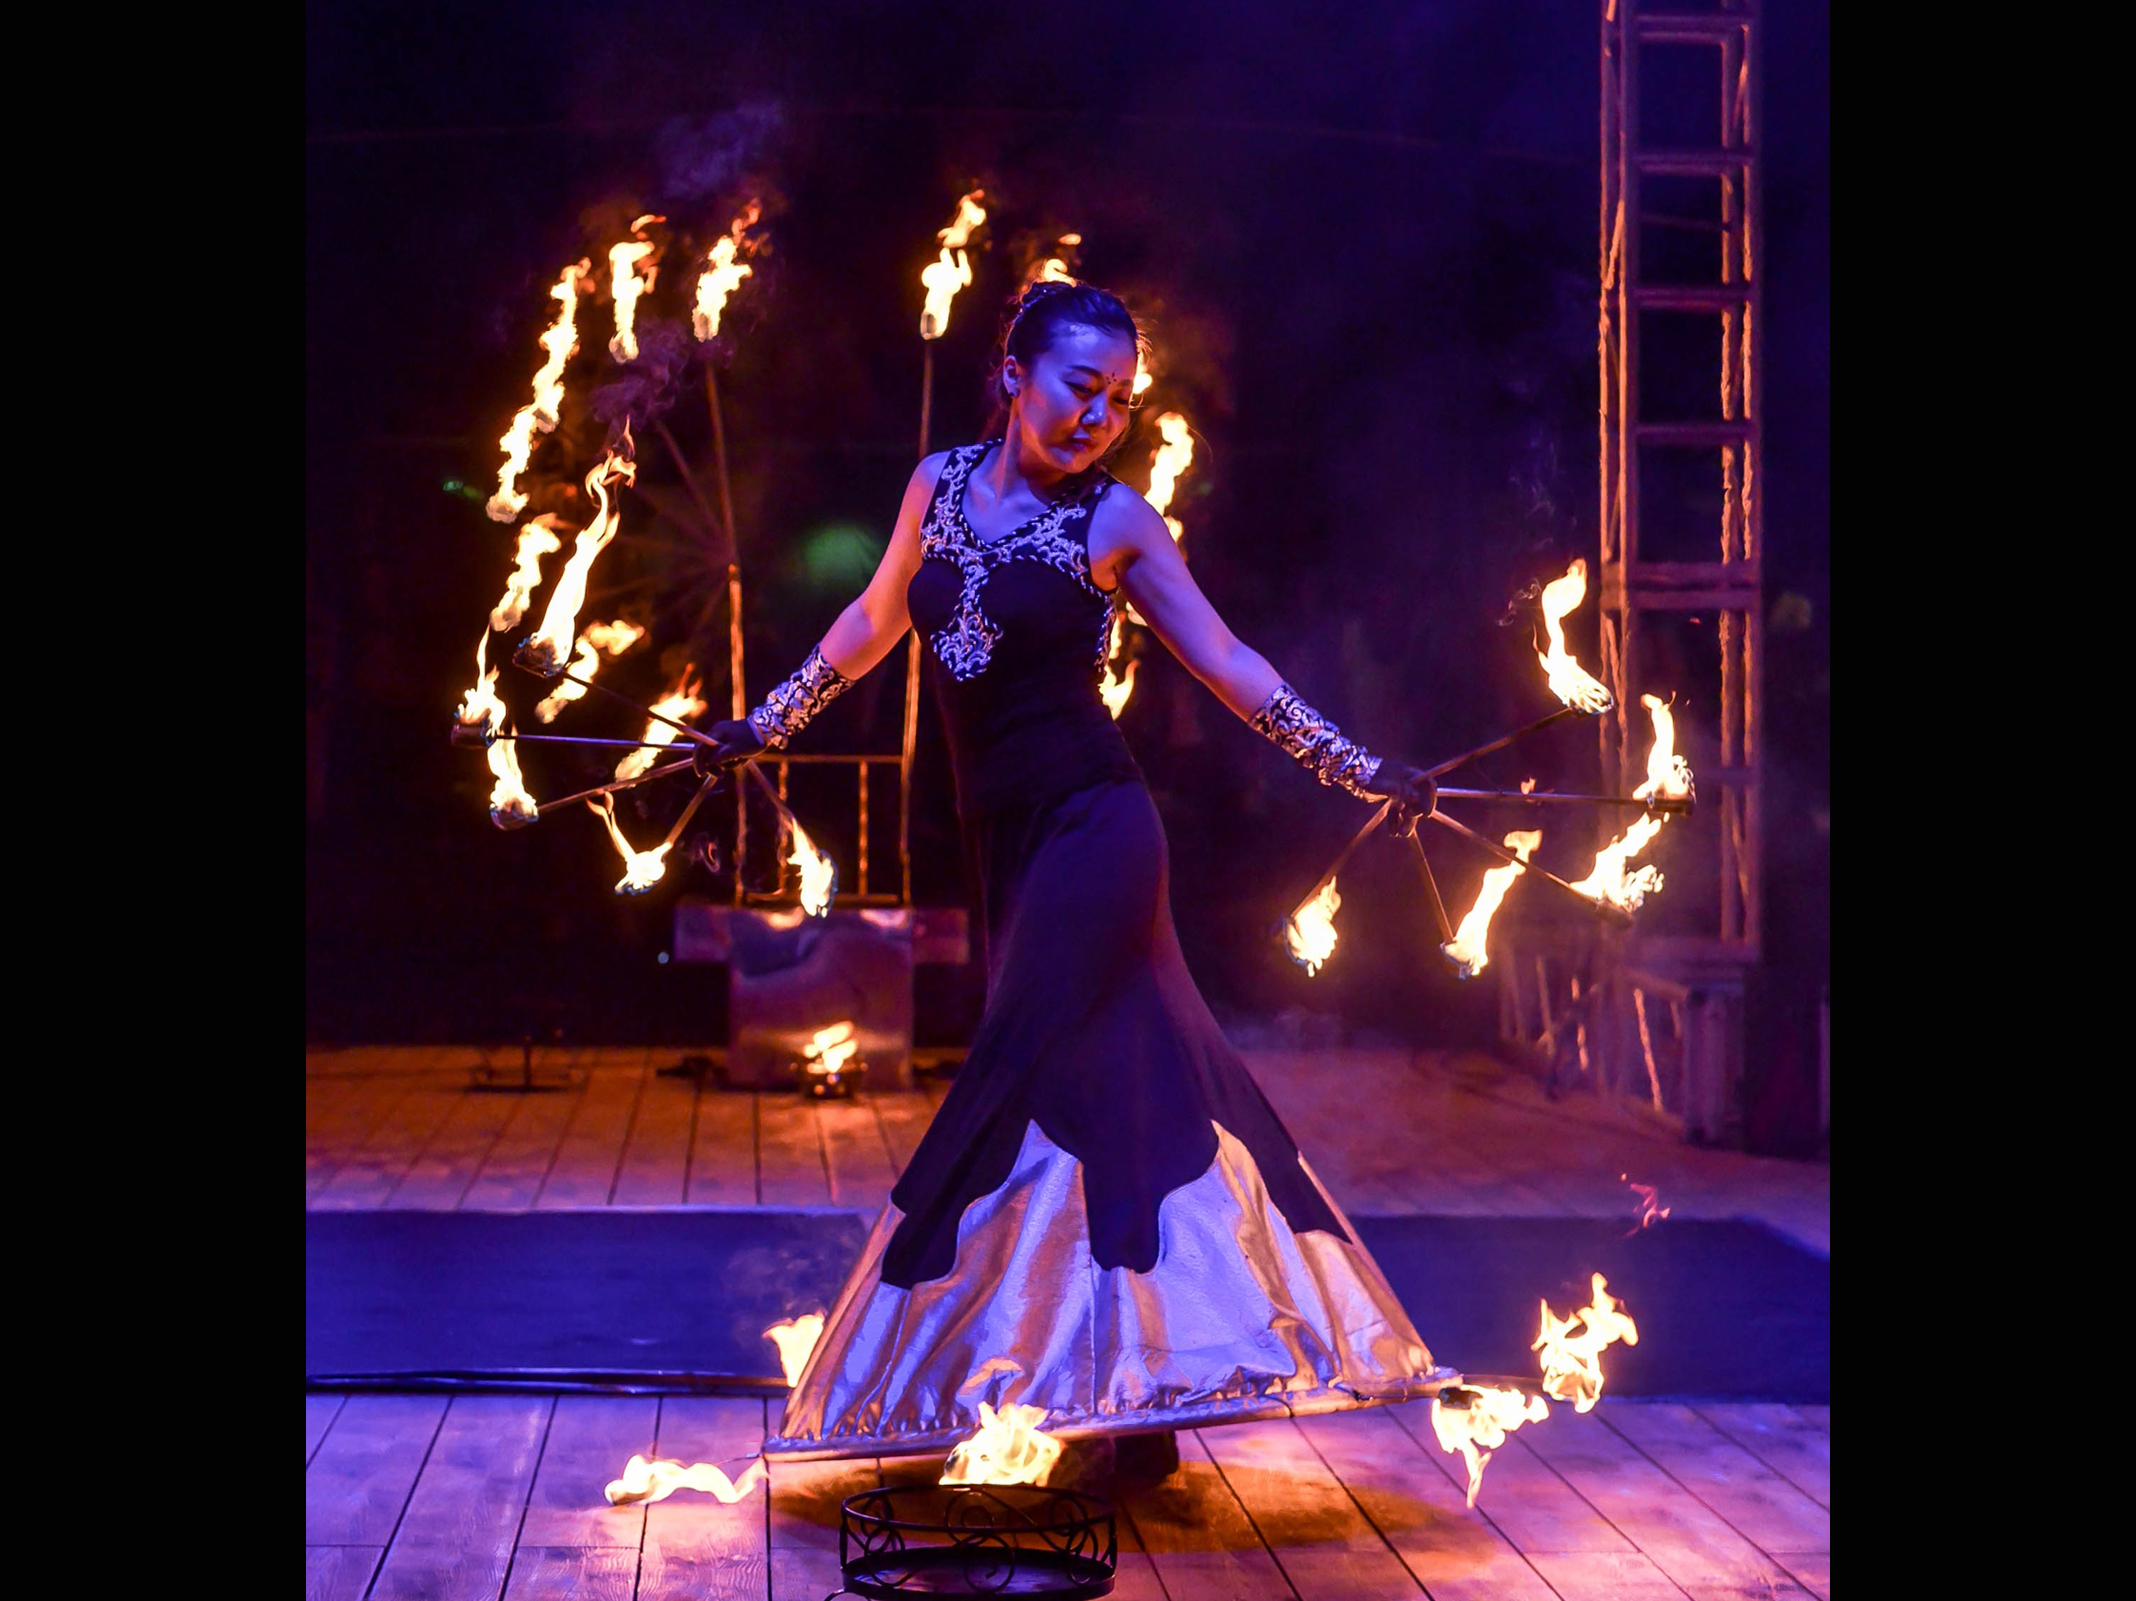 Fire Arts_Flaming Fire team_yoony k  (5)